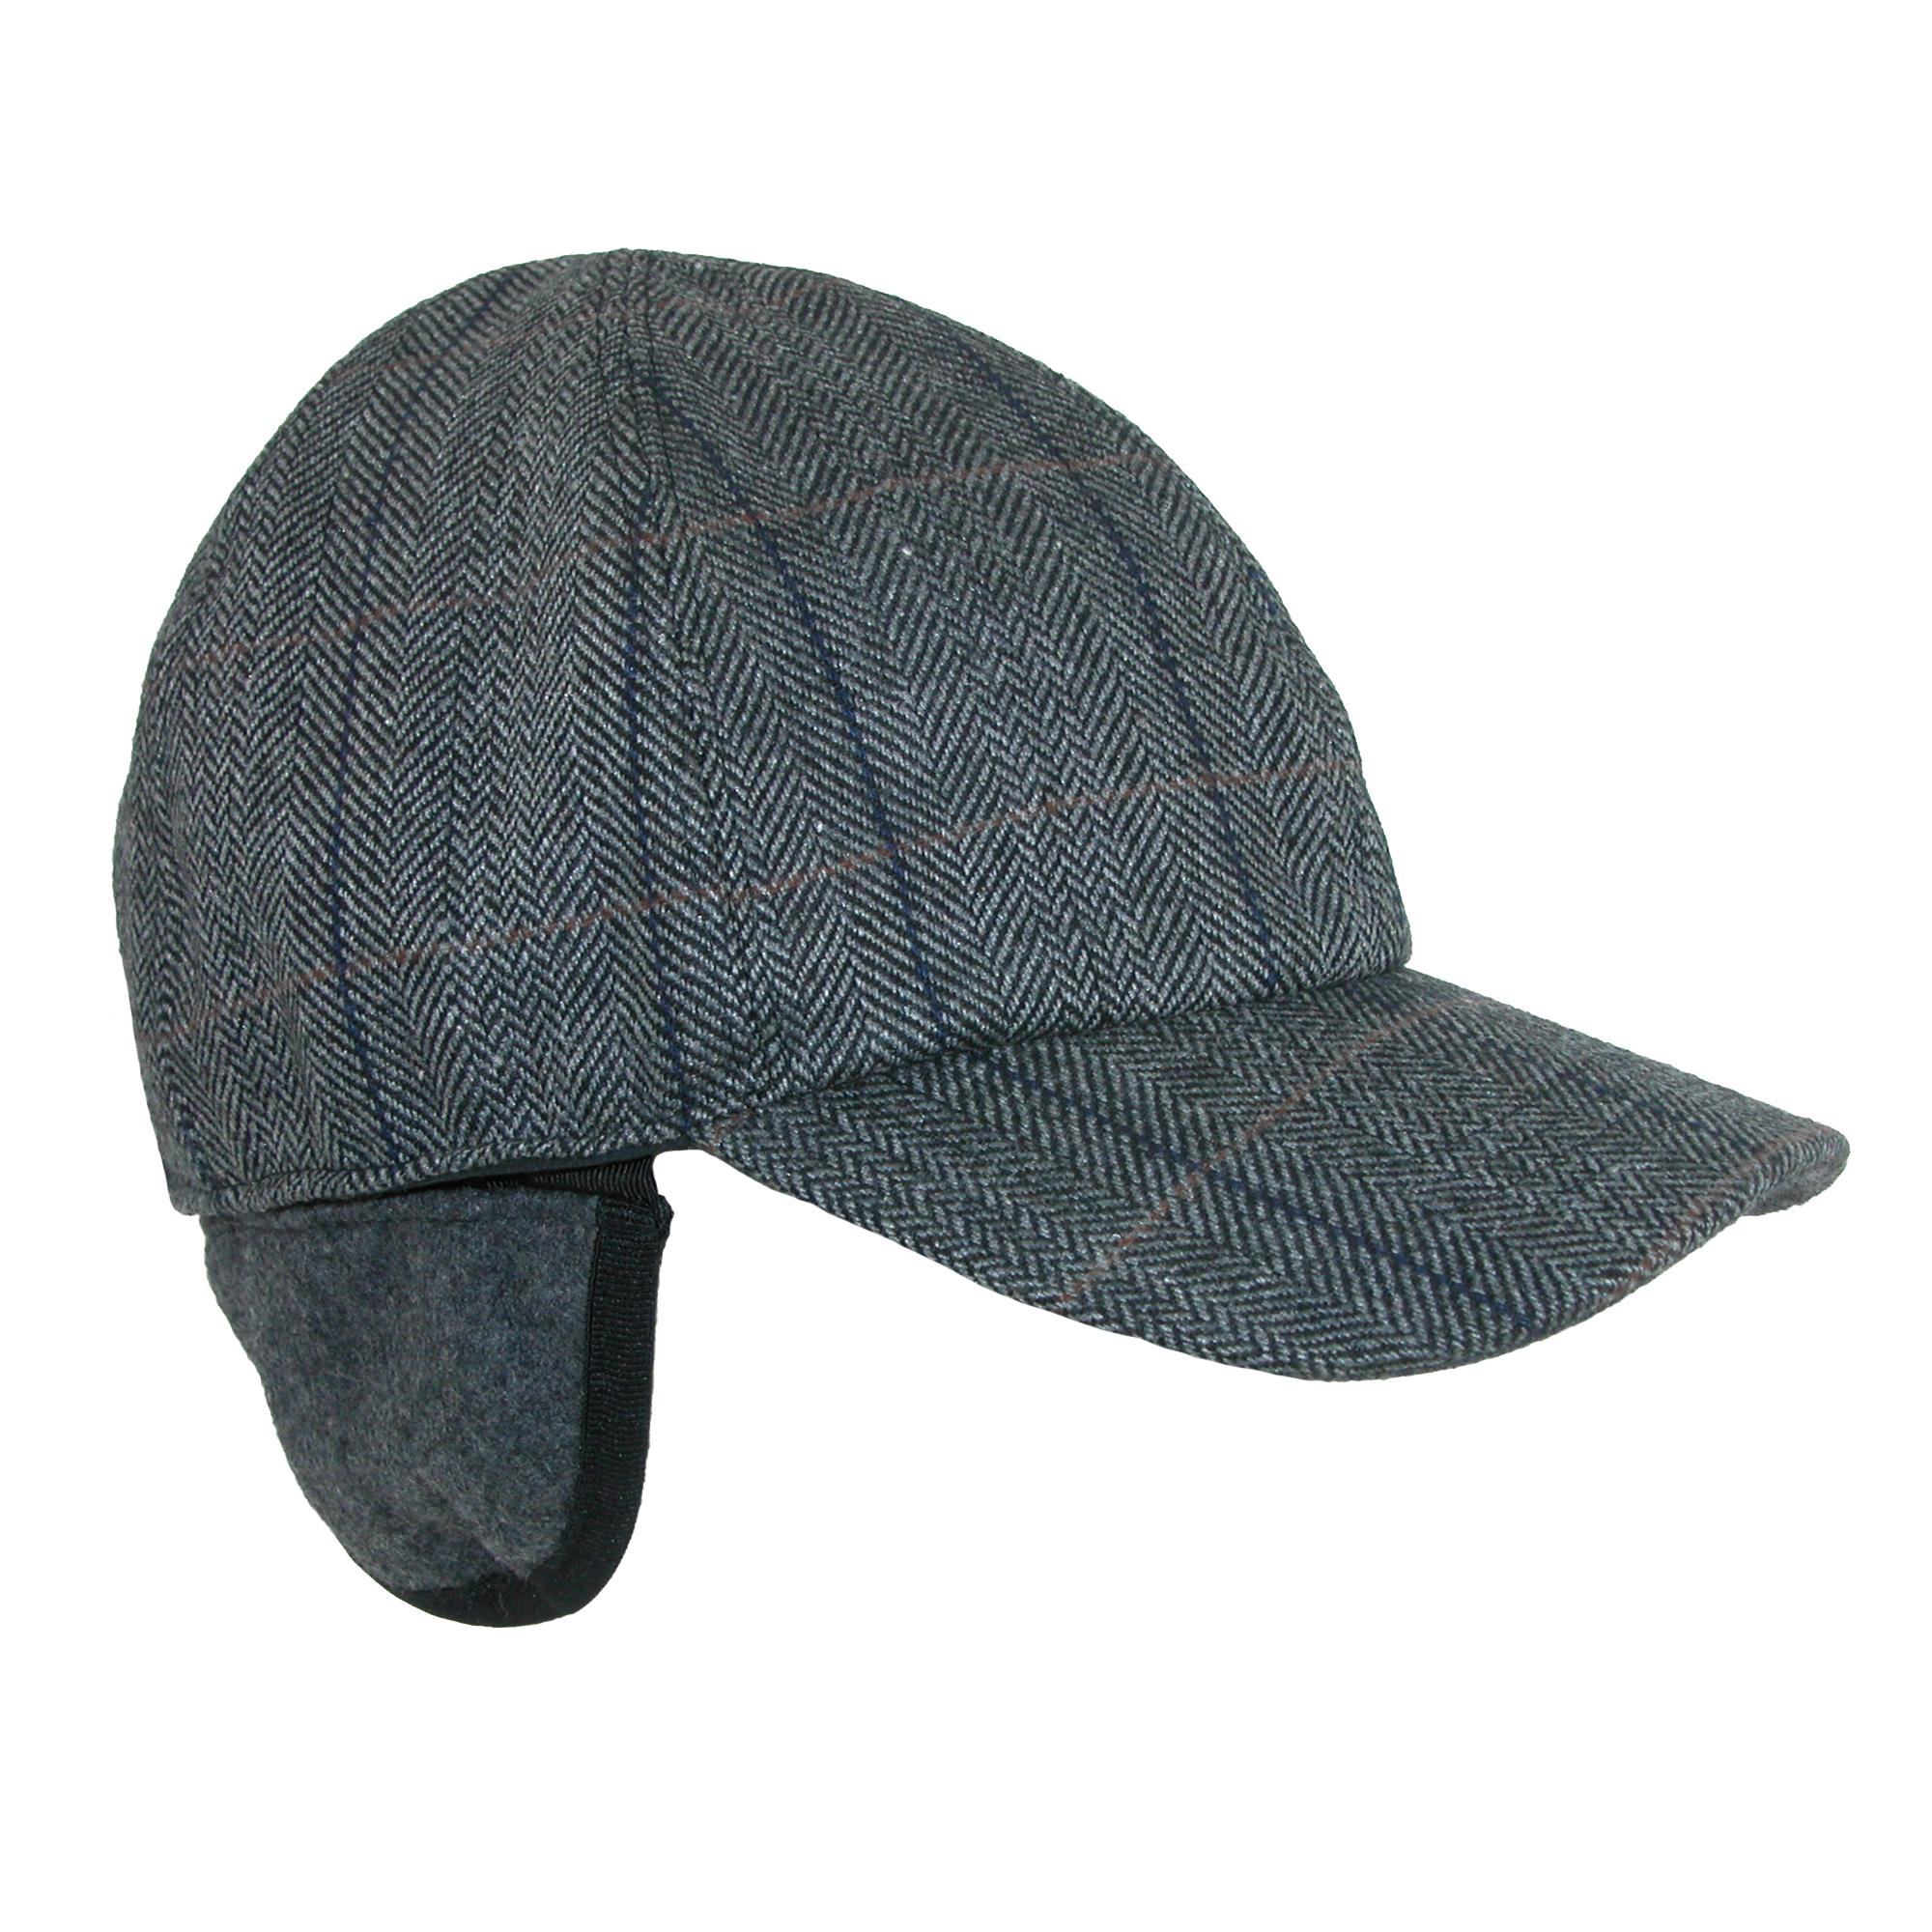 830c29400ba8b Broner Men s Herringbone Plaid Baseball Cap with Earflaps (BR-7609-CHA-L